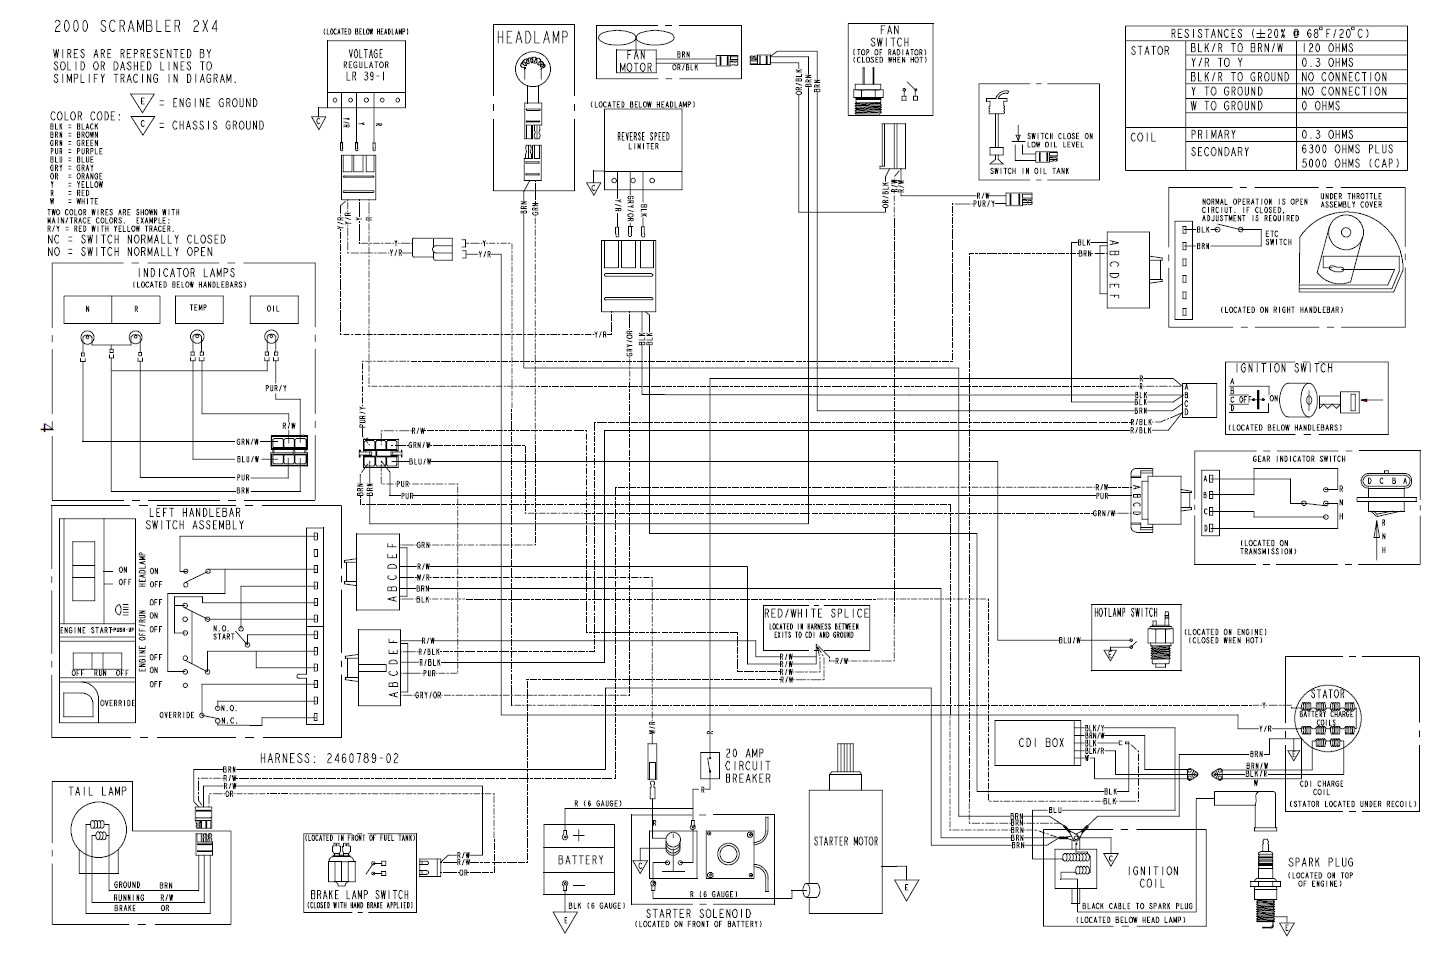 2017 Polari Rzr Wiring Diagram Details | Avecdd Unix on